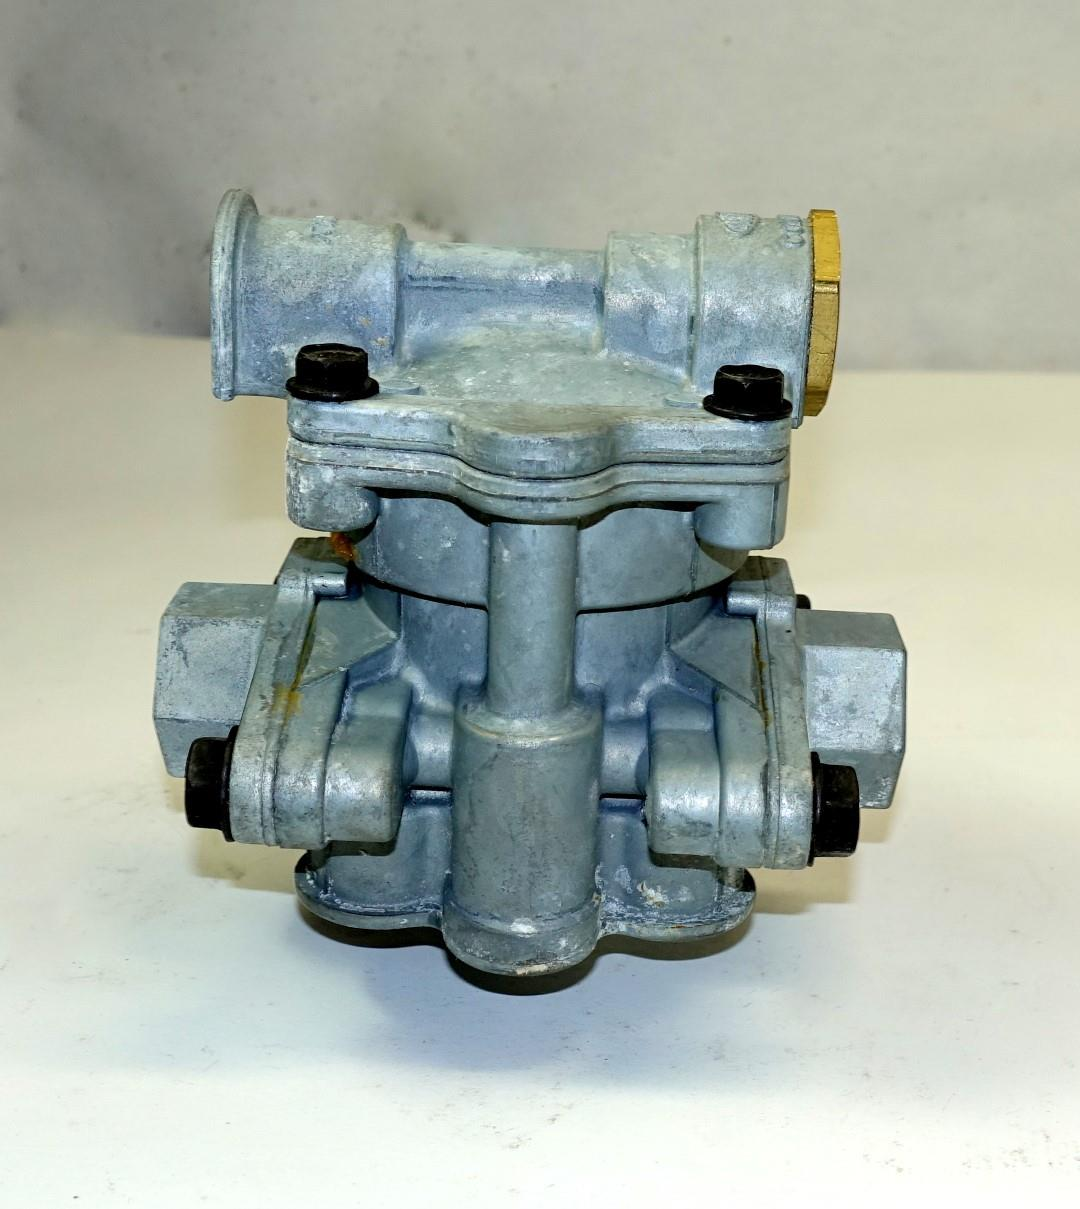 SP-1989 | 2530-01-358-6041 Spring Brake Control Valve for Commercial Trucks and Trailers NOS (7).JPG